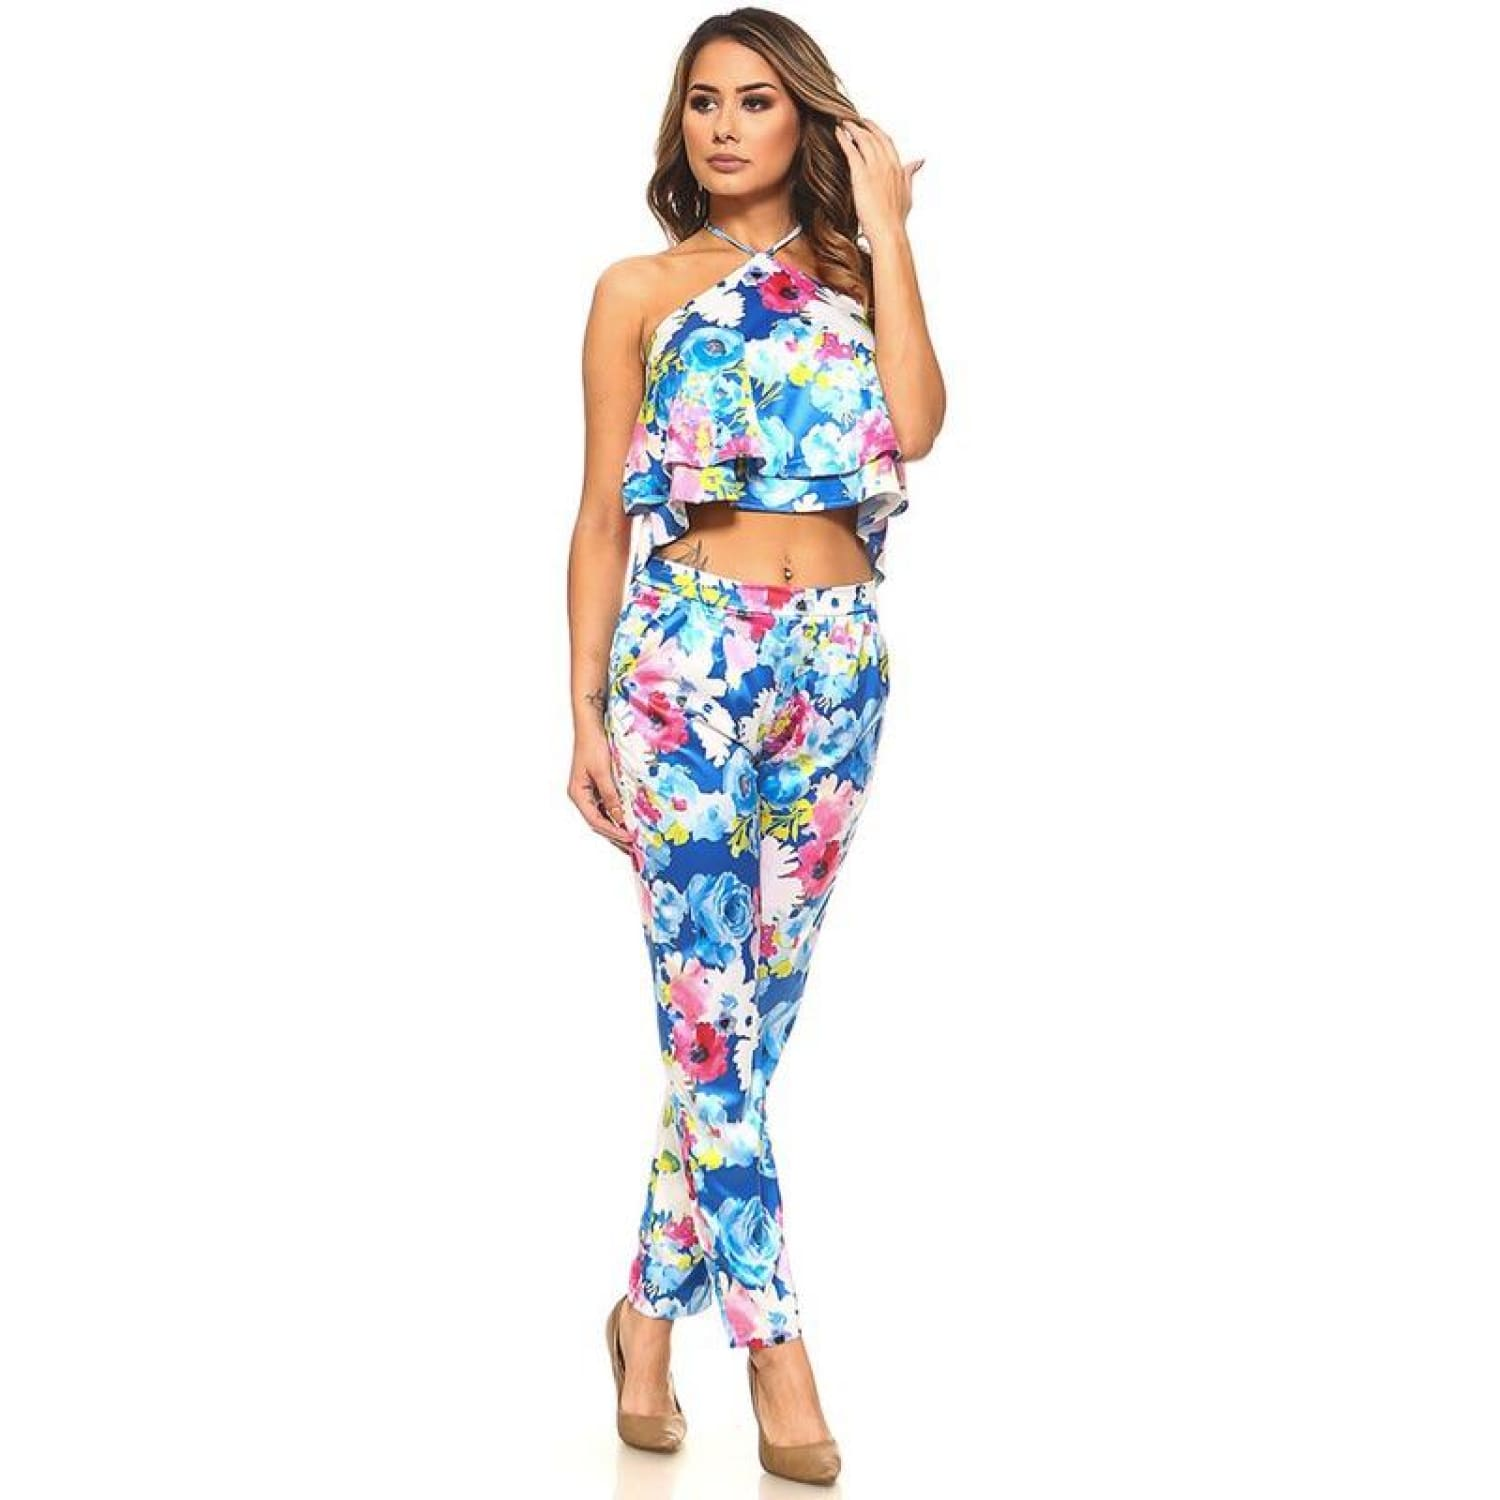 Blue Floral Halter Top and Pants Set - Best YOU by HTS